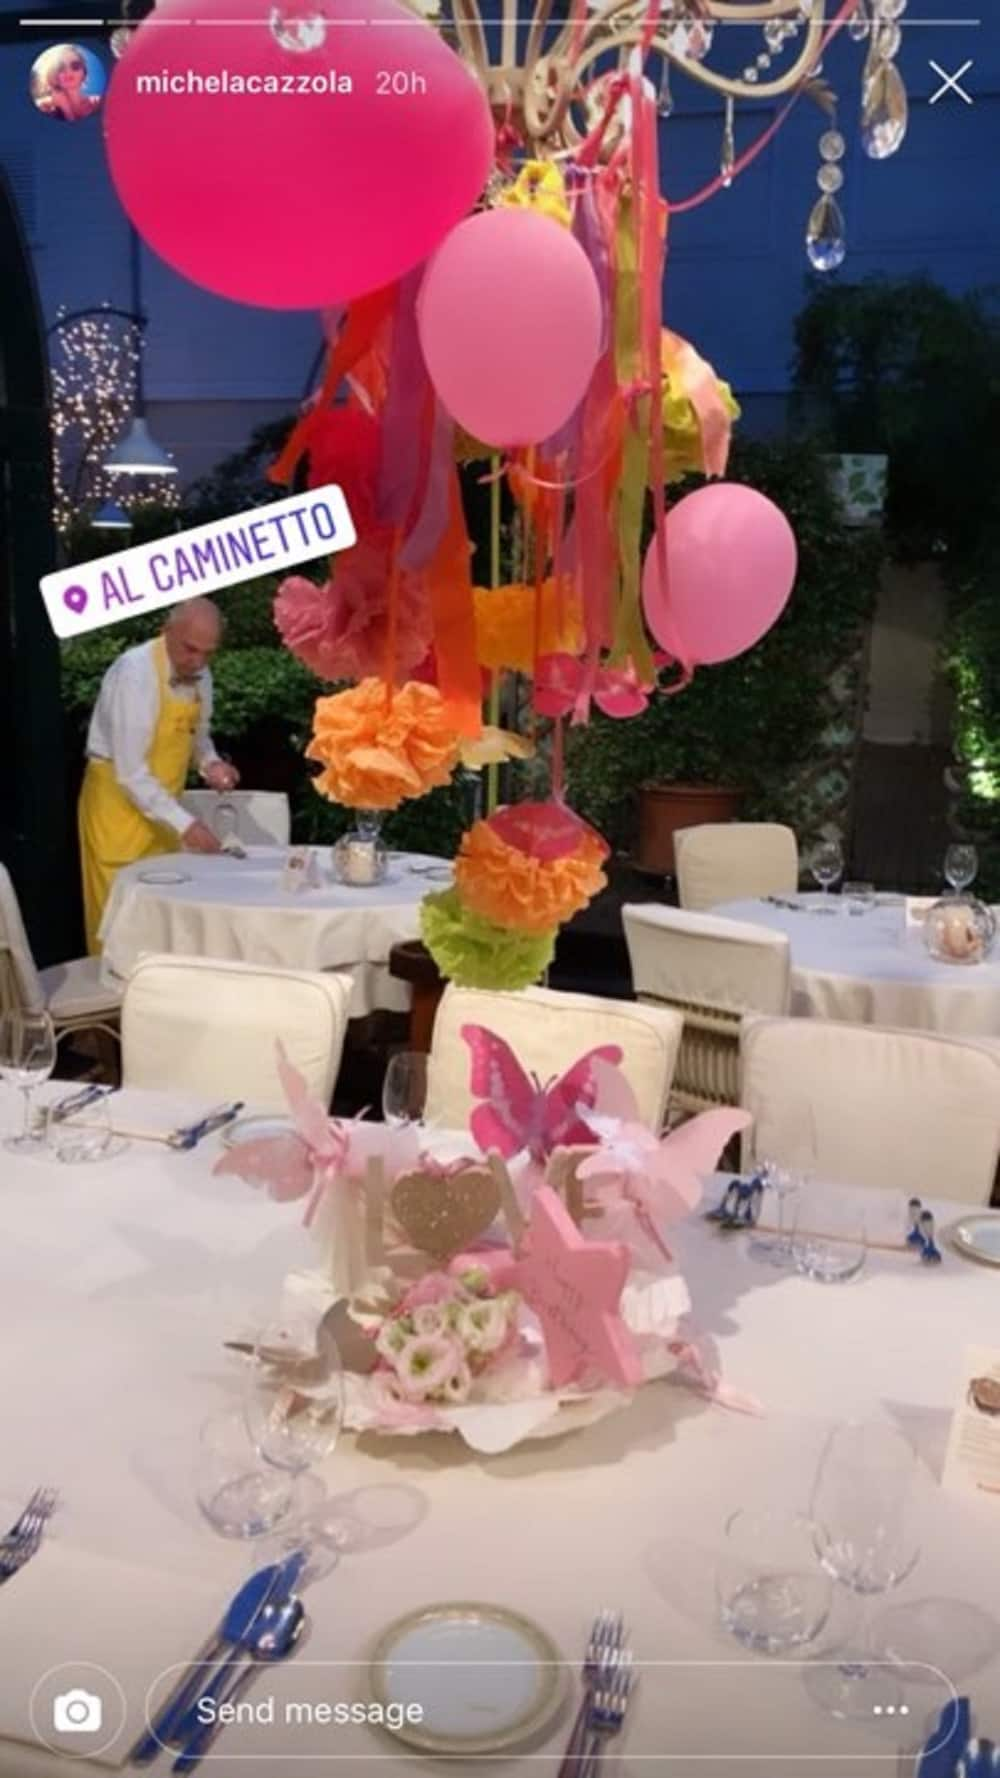 James Yap, Michela Cazzola's daughter celebrates 1st birthday in Italy